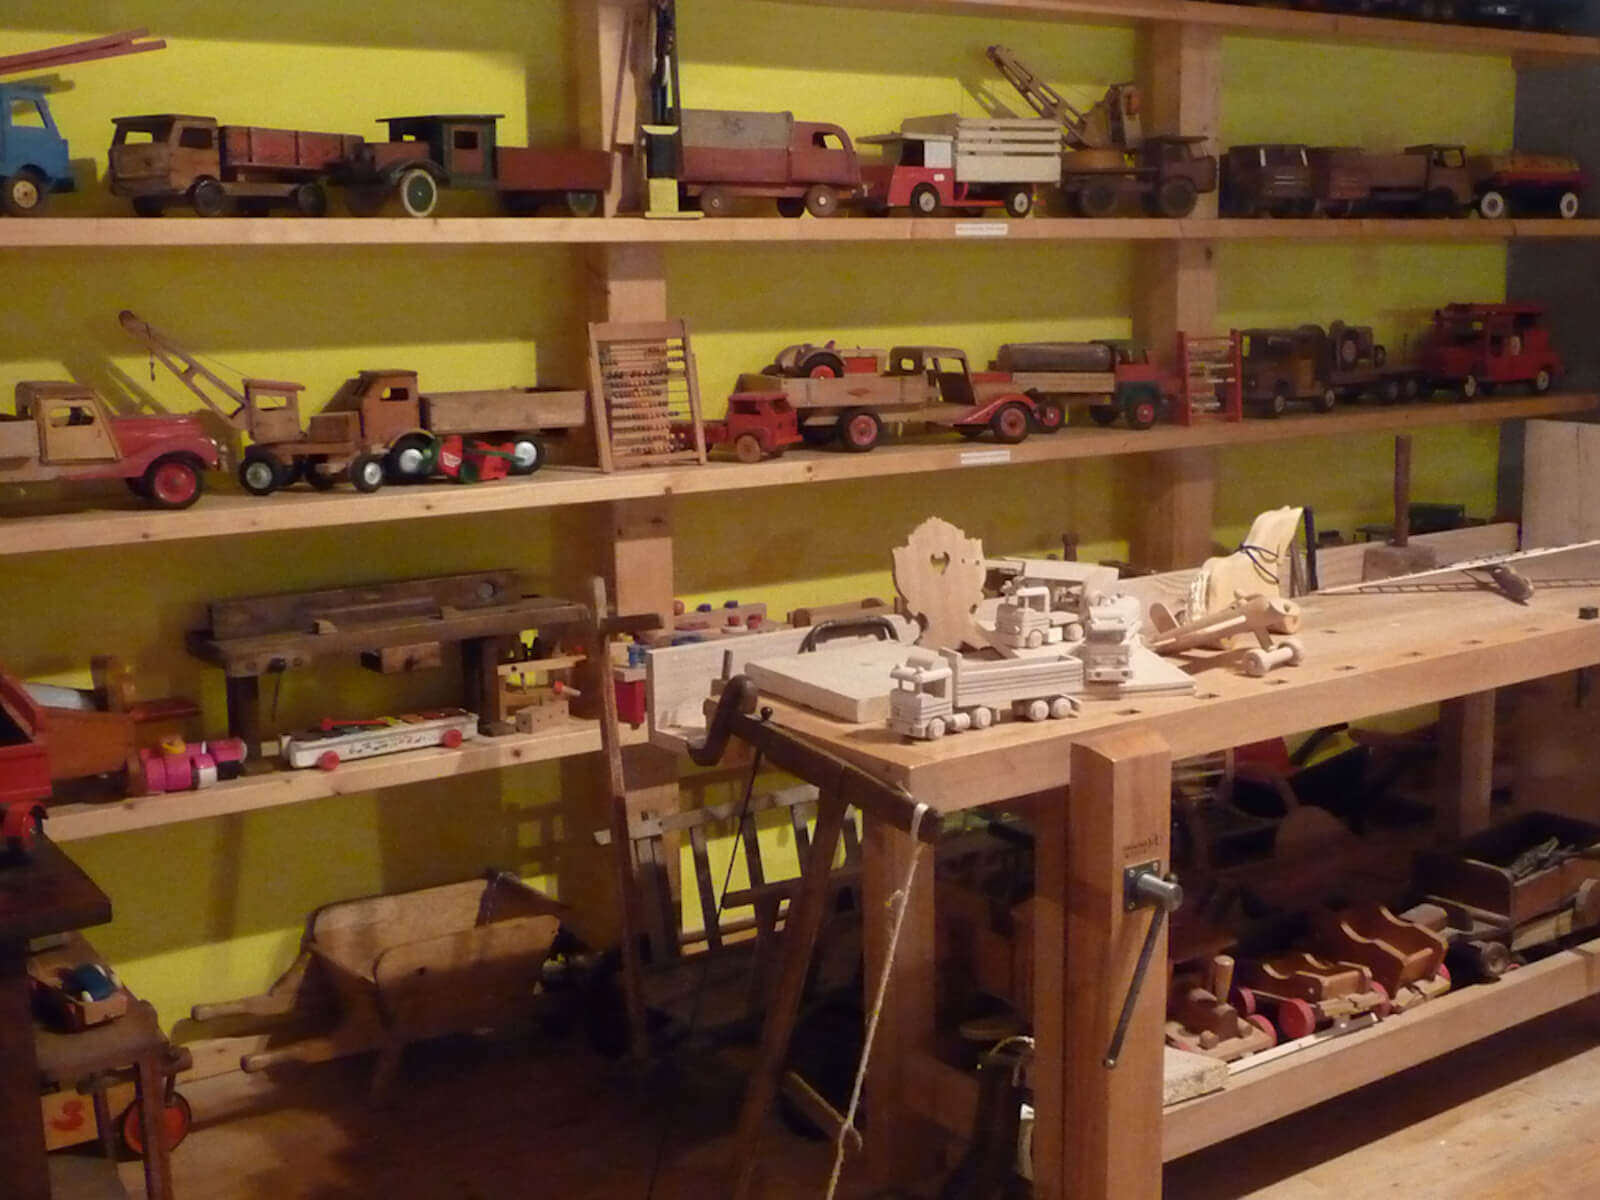 http://apps.tourisme-alsace.info/photos/kaysersberg/photos/musee-bois-labaroche-jouets.jpg